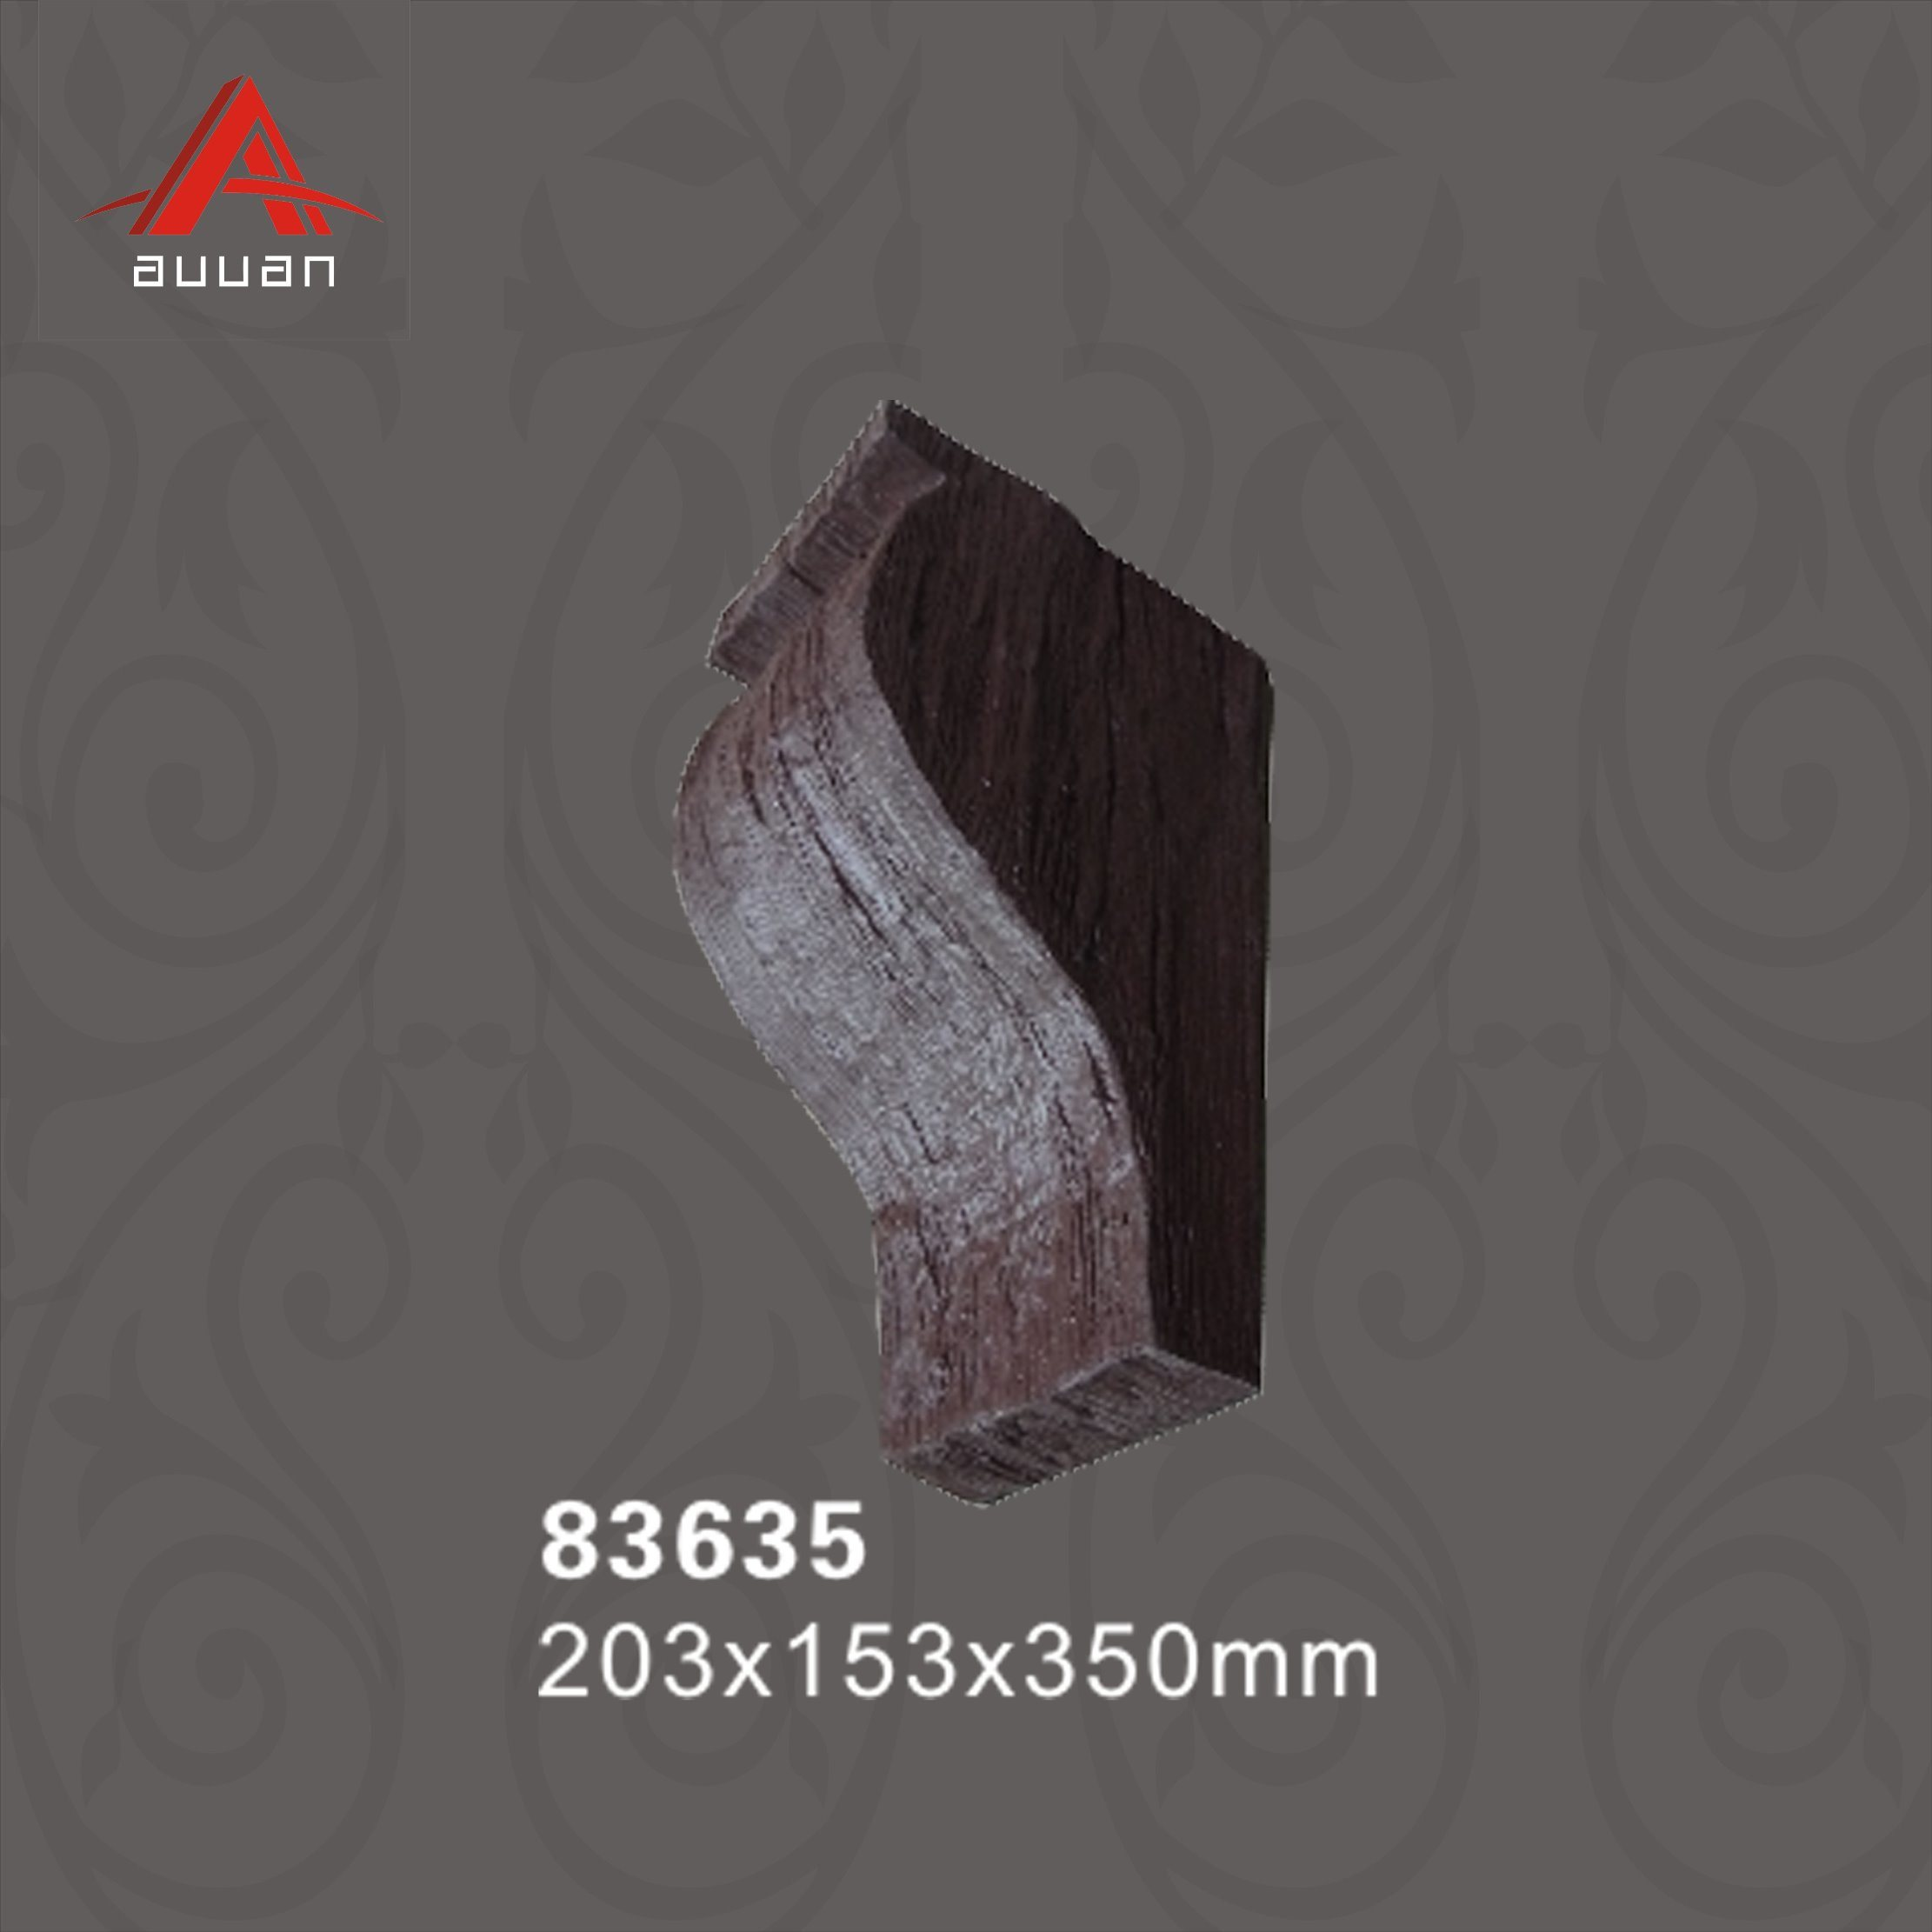 China 83635 Pu Rustic Wood Corbels Lowes Price Corbels For Sale China Wood Corbel Rustic Corbels